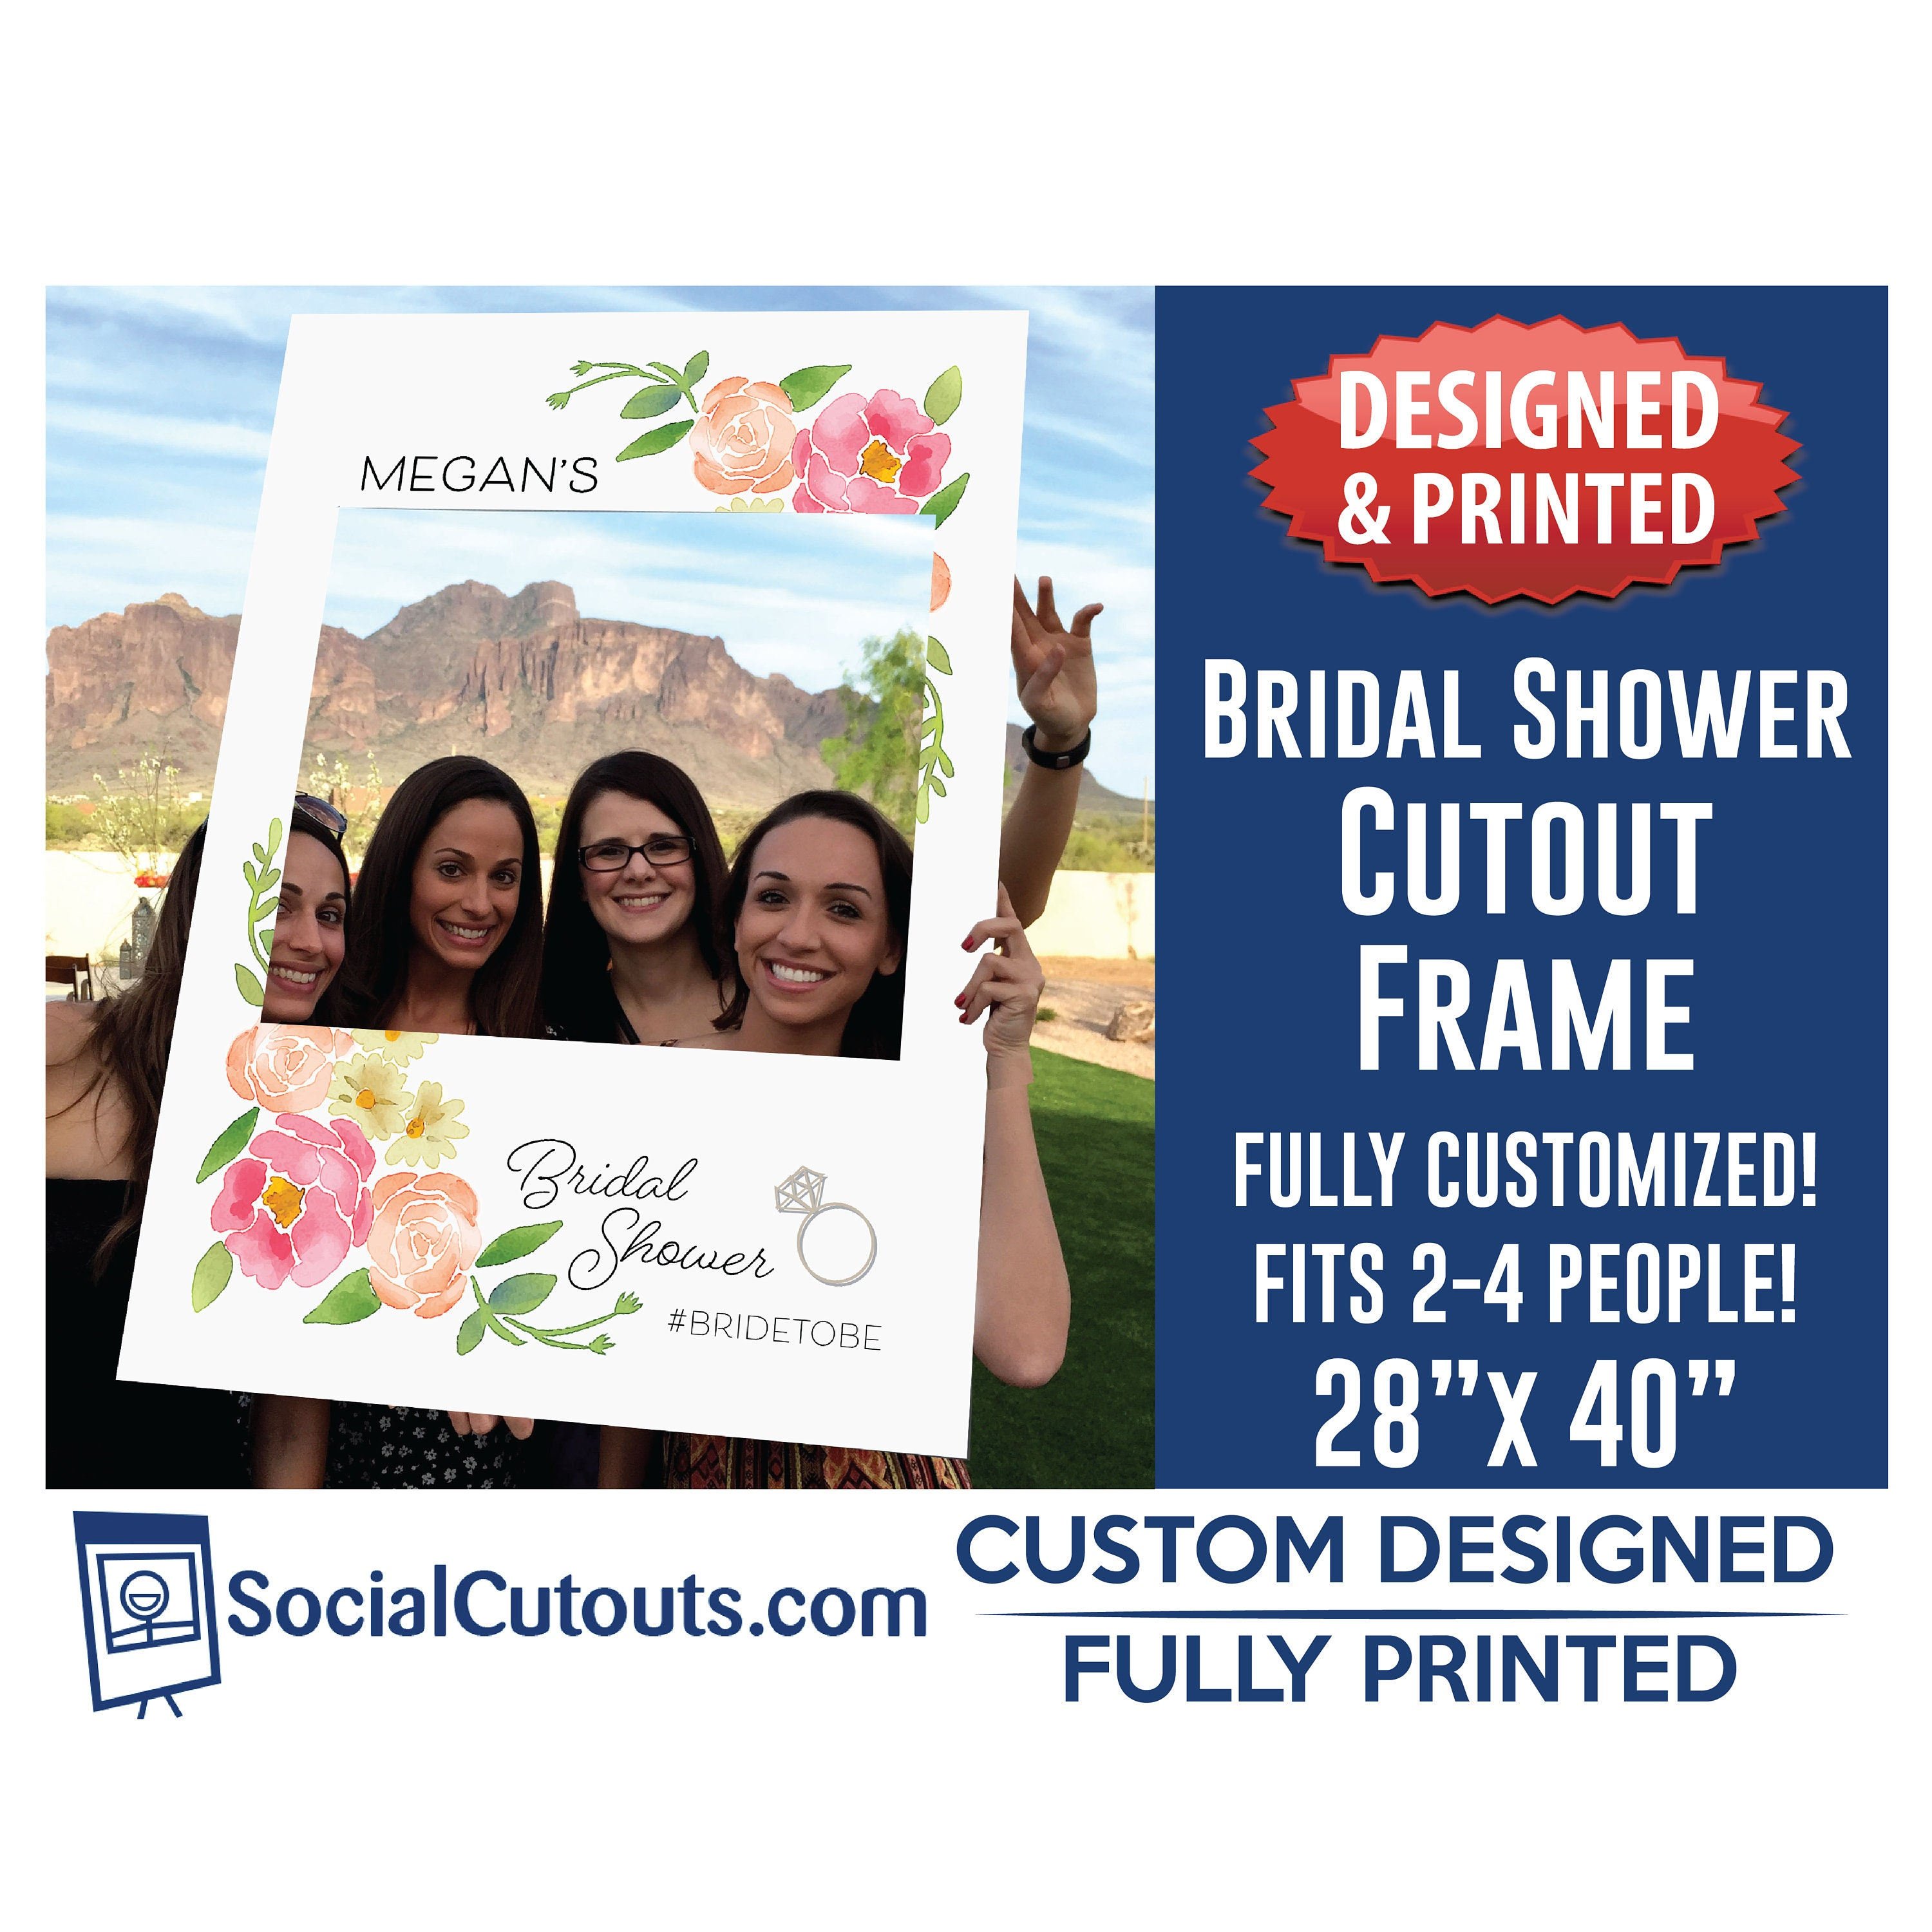 Bridal Shower Selfie Frame Fully Customized and Printed Photo   Etsy